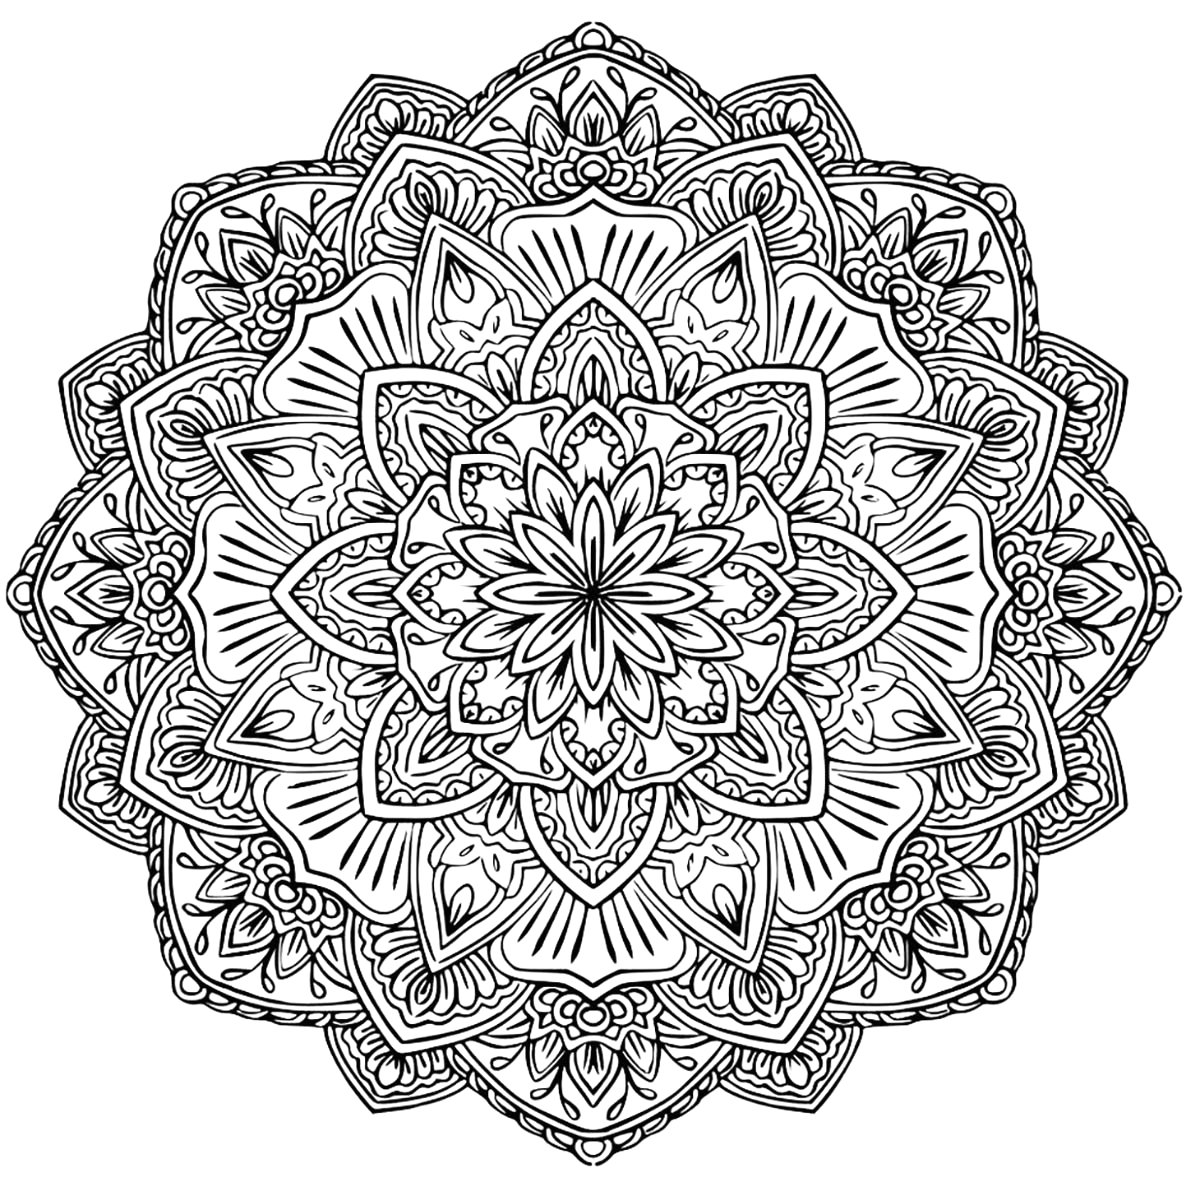 Free Printable Mandala Coloring Pages for Adults Pdf Mandala to In Pdf 1 M&alas Adult Coloring Pages